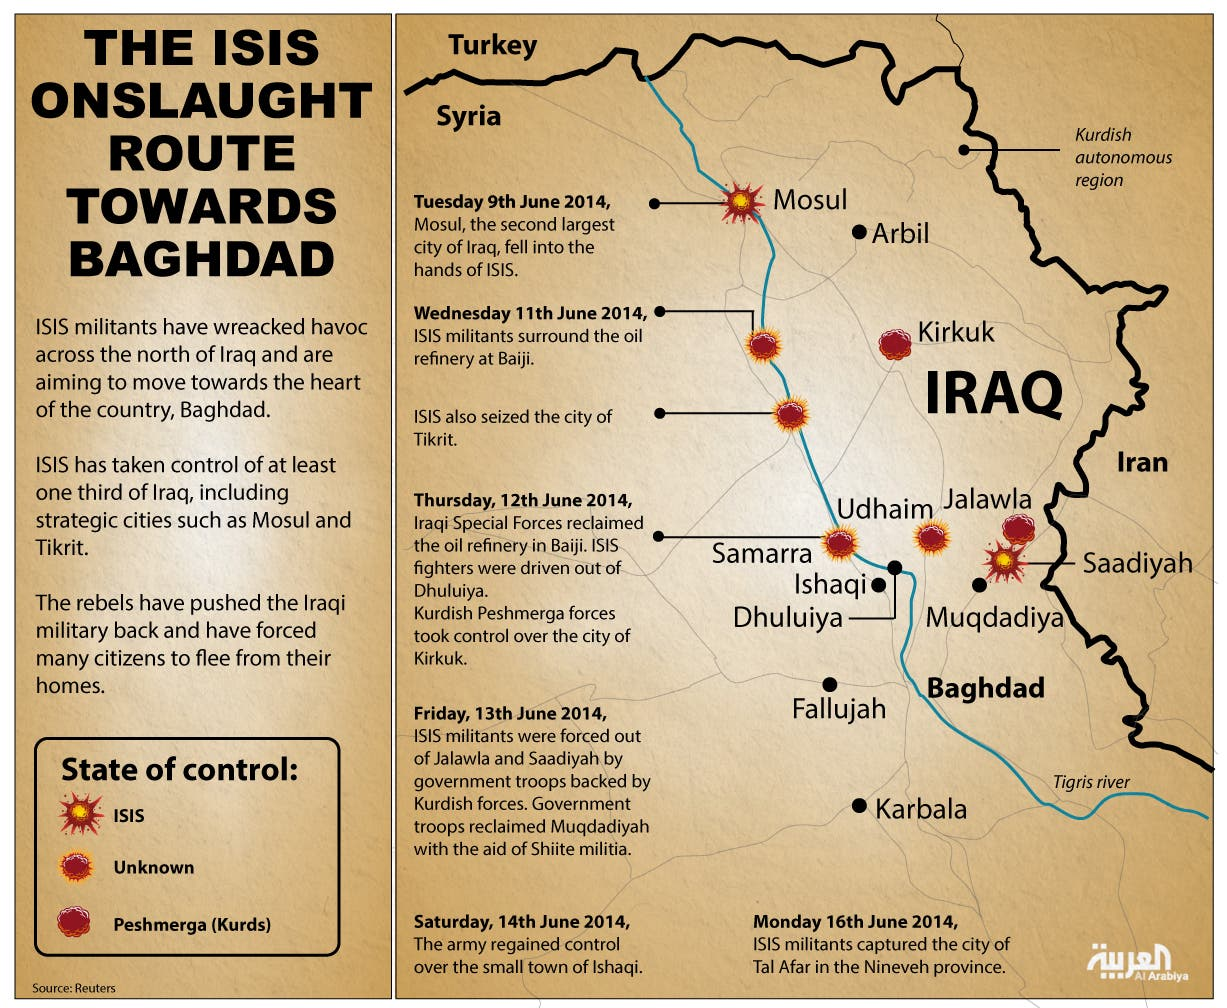 Infographic: The ISIS onslaught route towards Baghdad